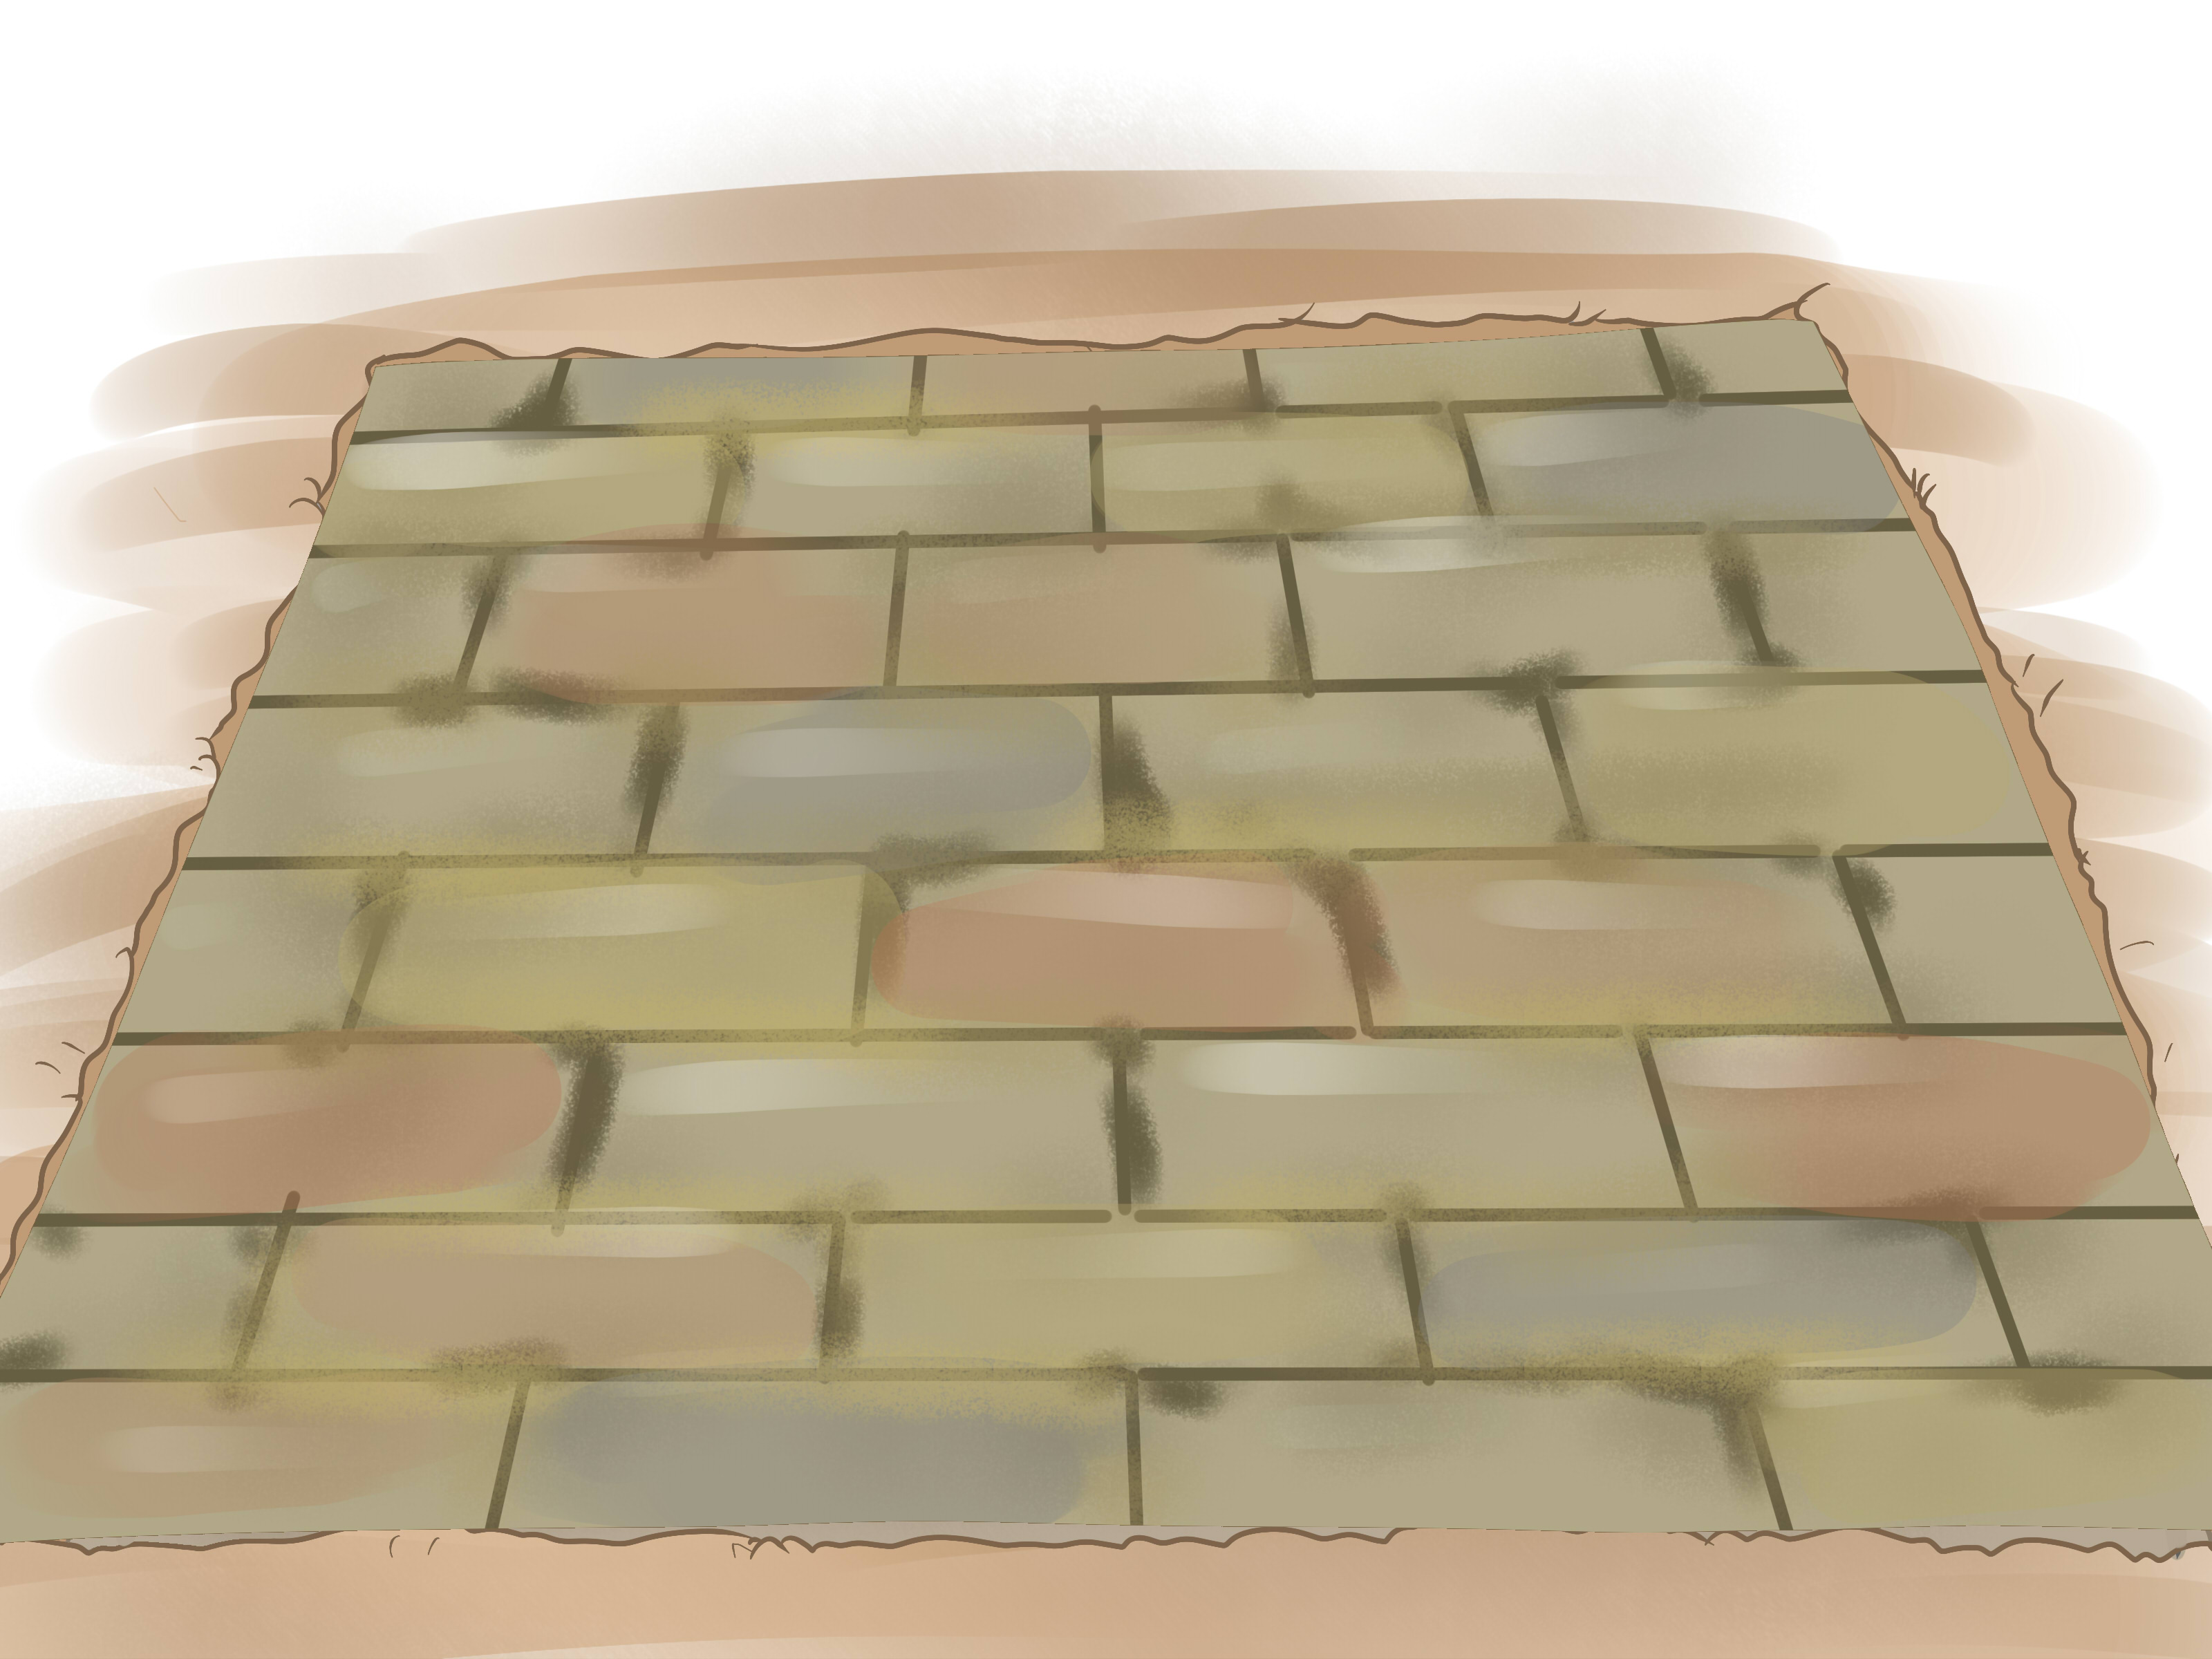 How To Install Concrete Pavers 11 Steps With Pictures